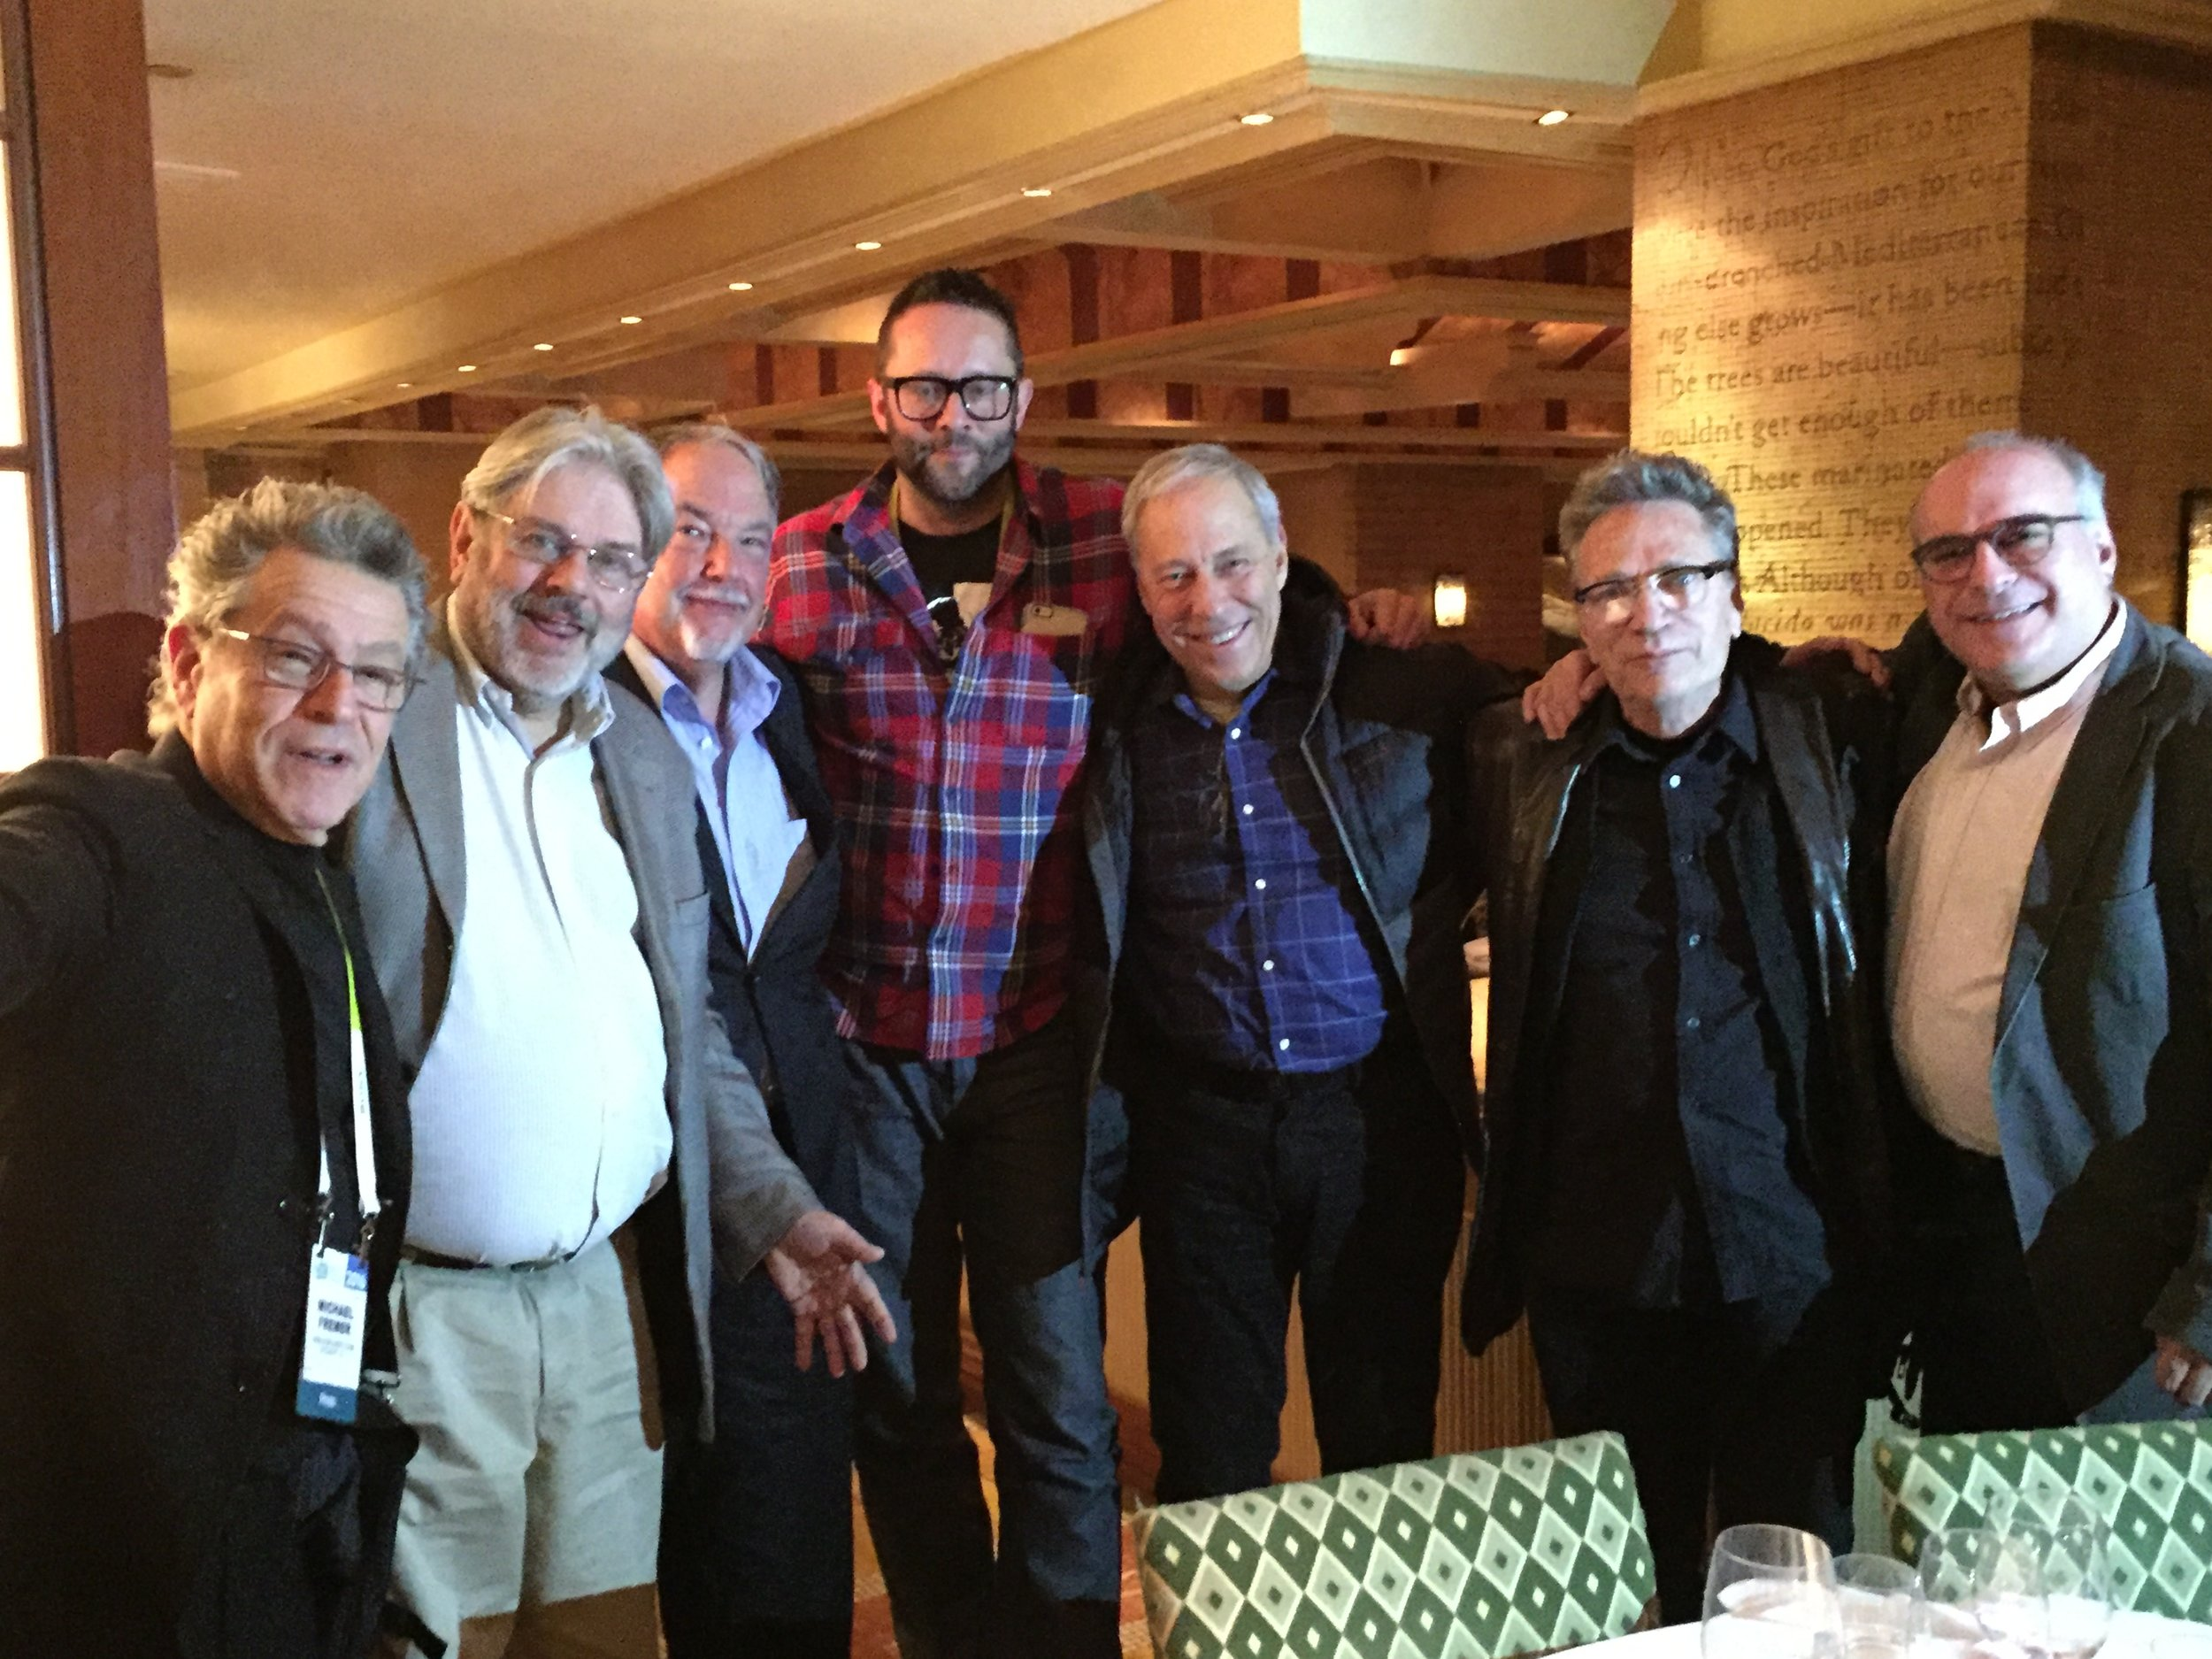 Michael Fremer, John Atkinson, Bill Leebens, John Darko, me, Herb Reichert and Ken Kessler